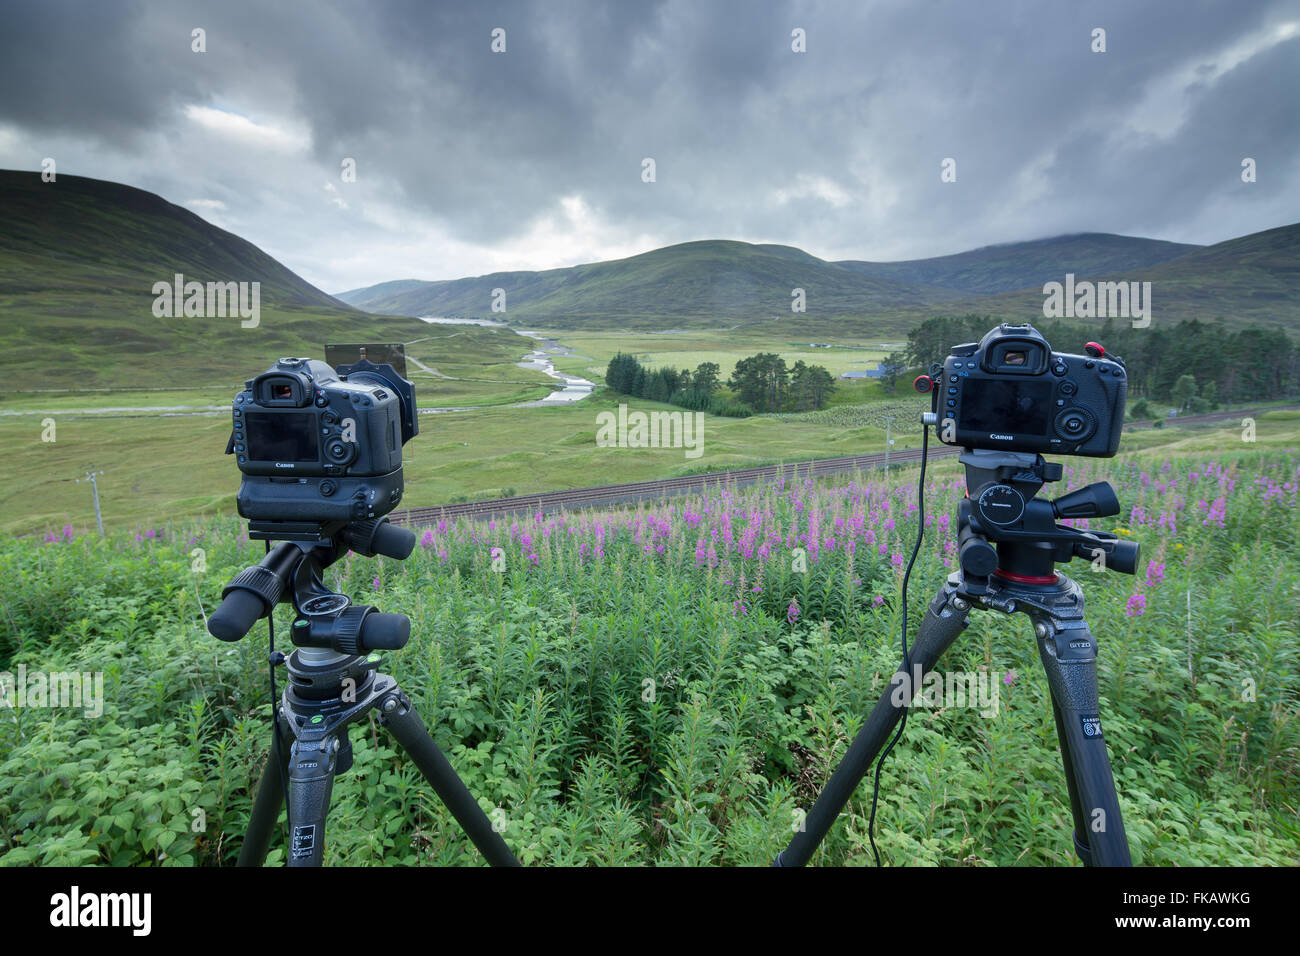 cameras waiting for the Royal Scotsman from Perth to Inverness at Dalnaspidal, Dalwhinnie, Badenoch and Strathspey, - Stock Image